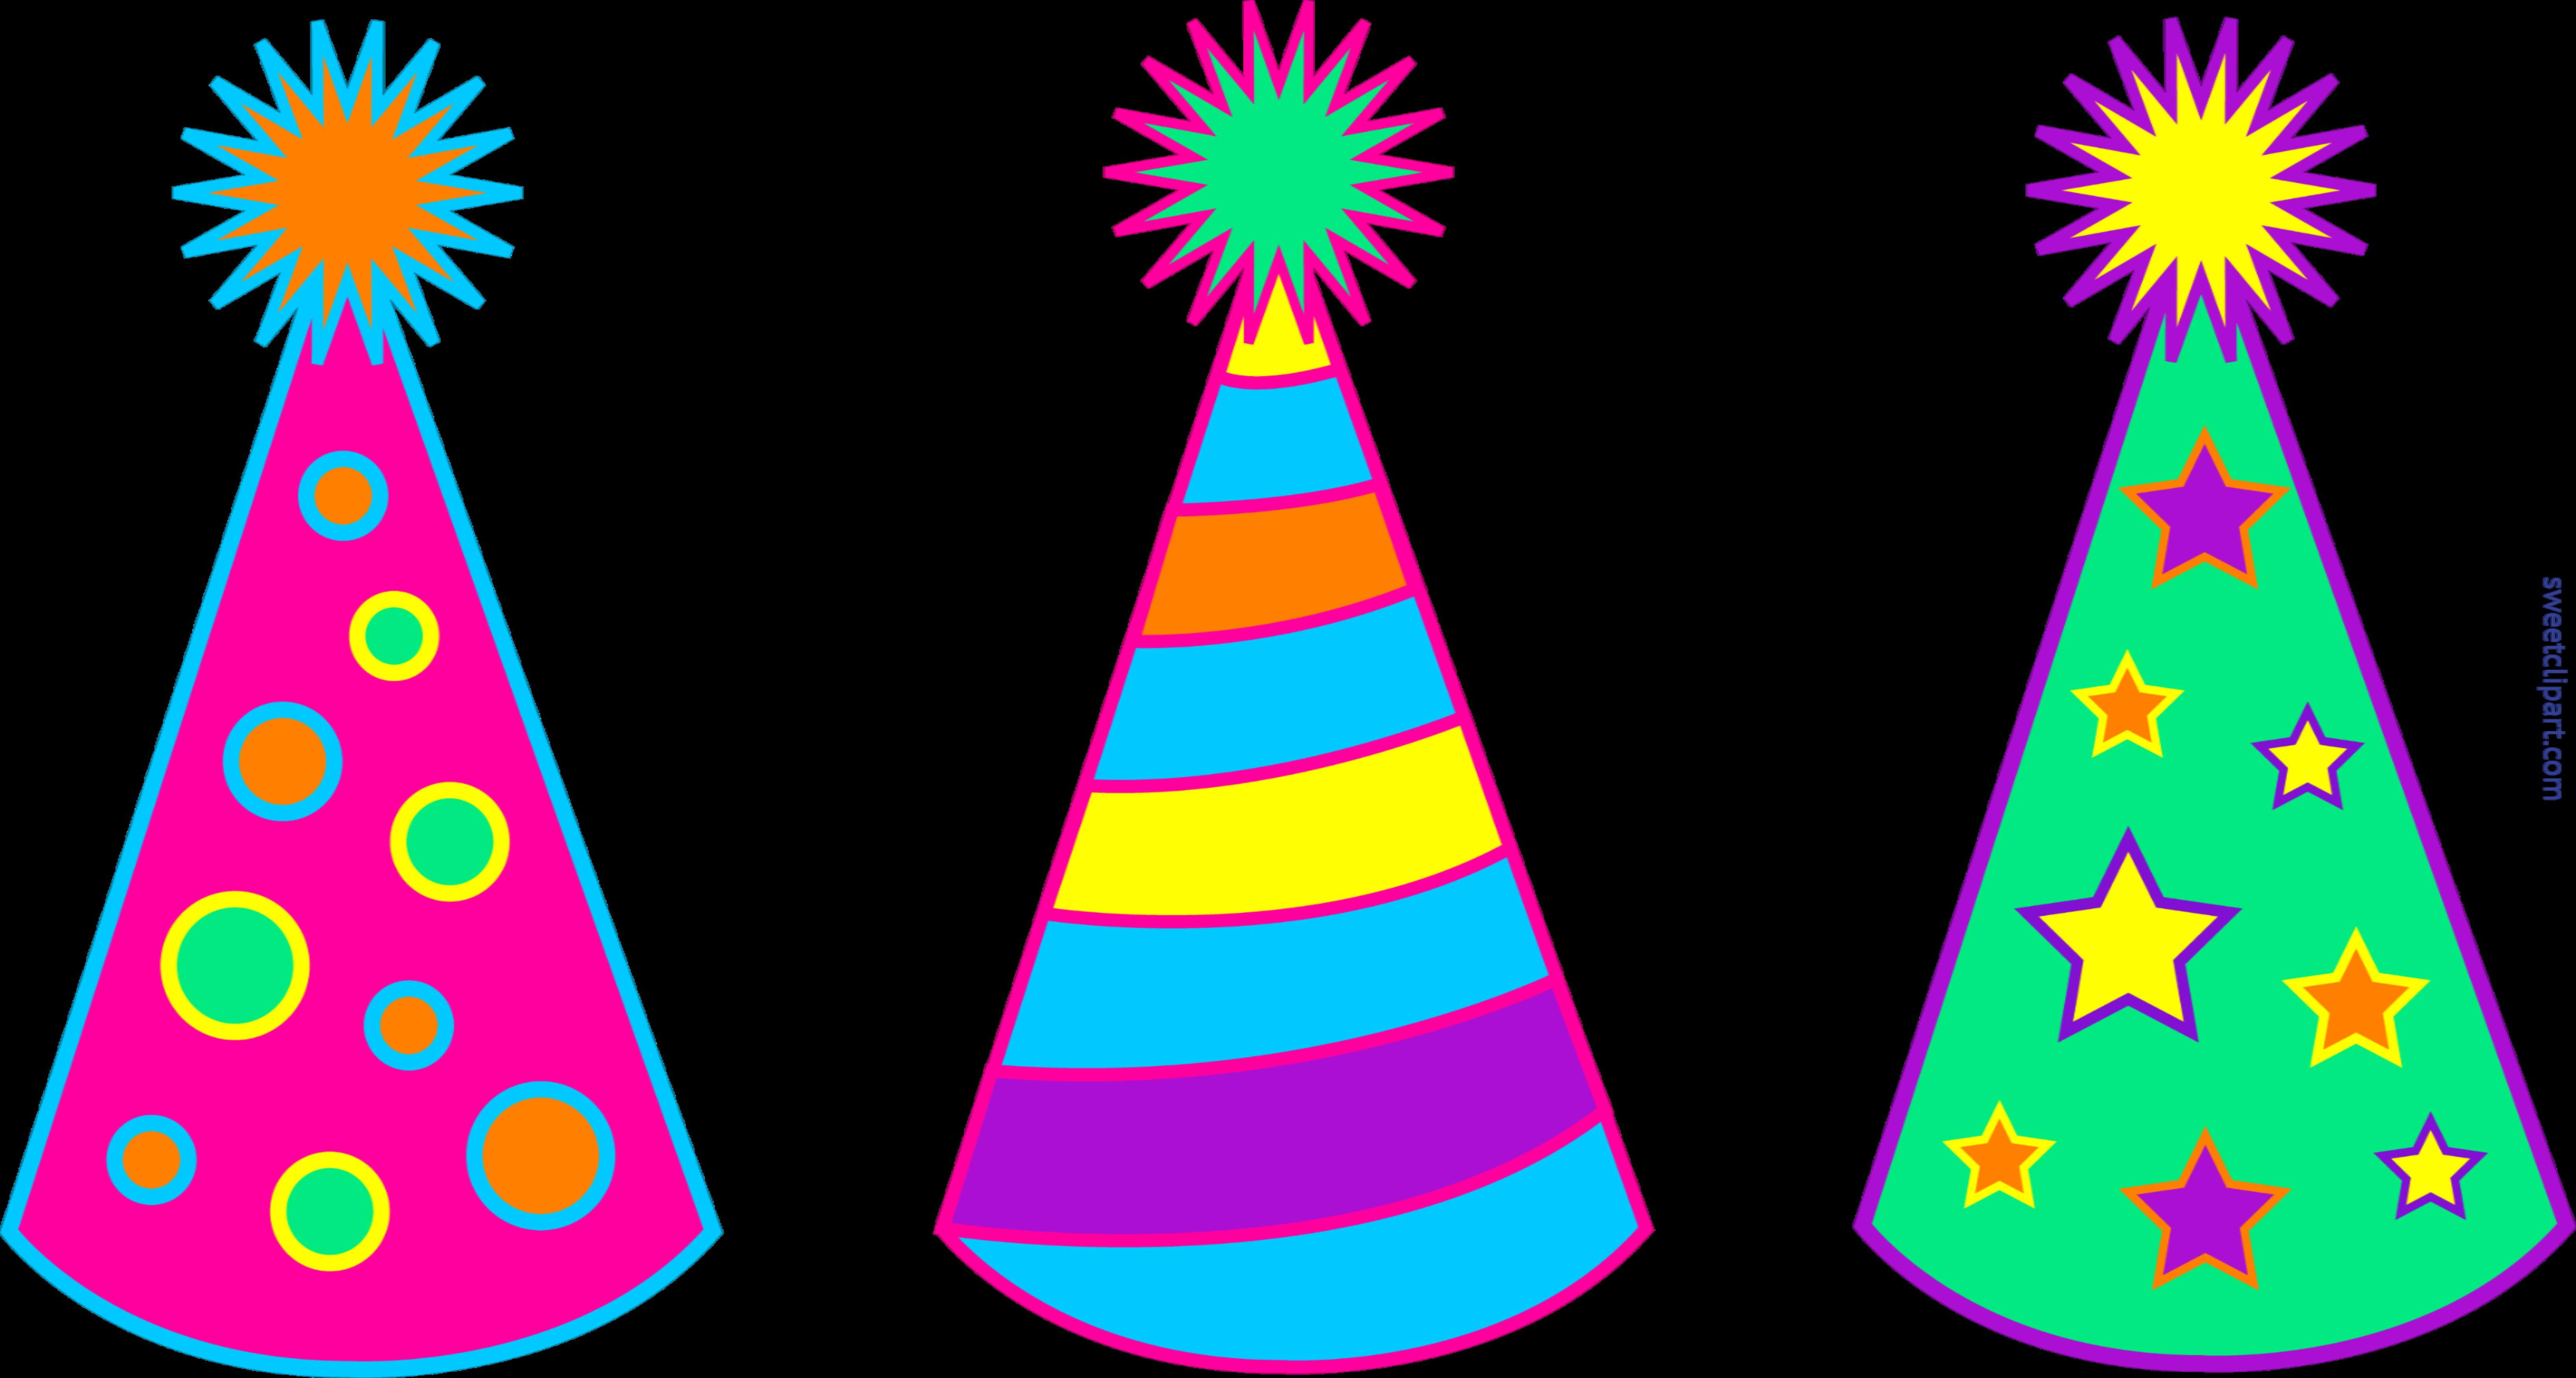 birthday party hat clipart ; Birthday-Party-Hats-Set-1-Clip-Art